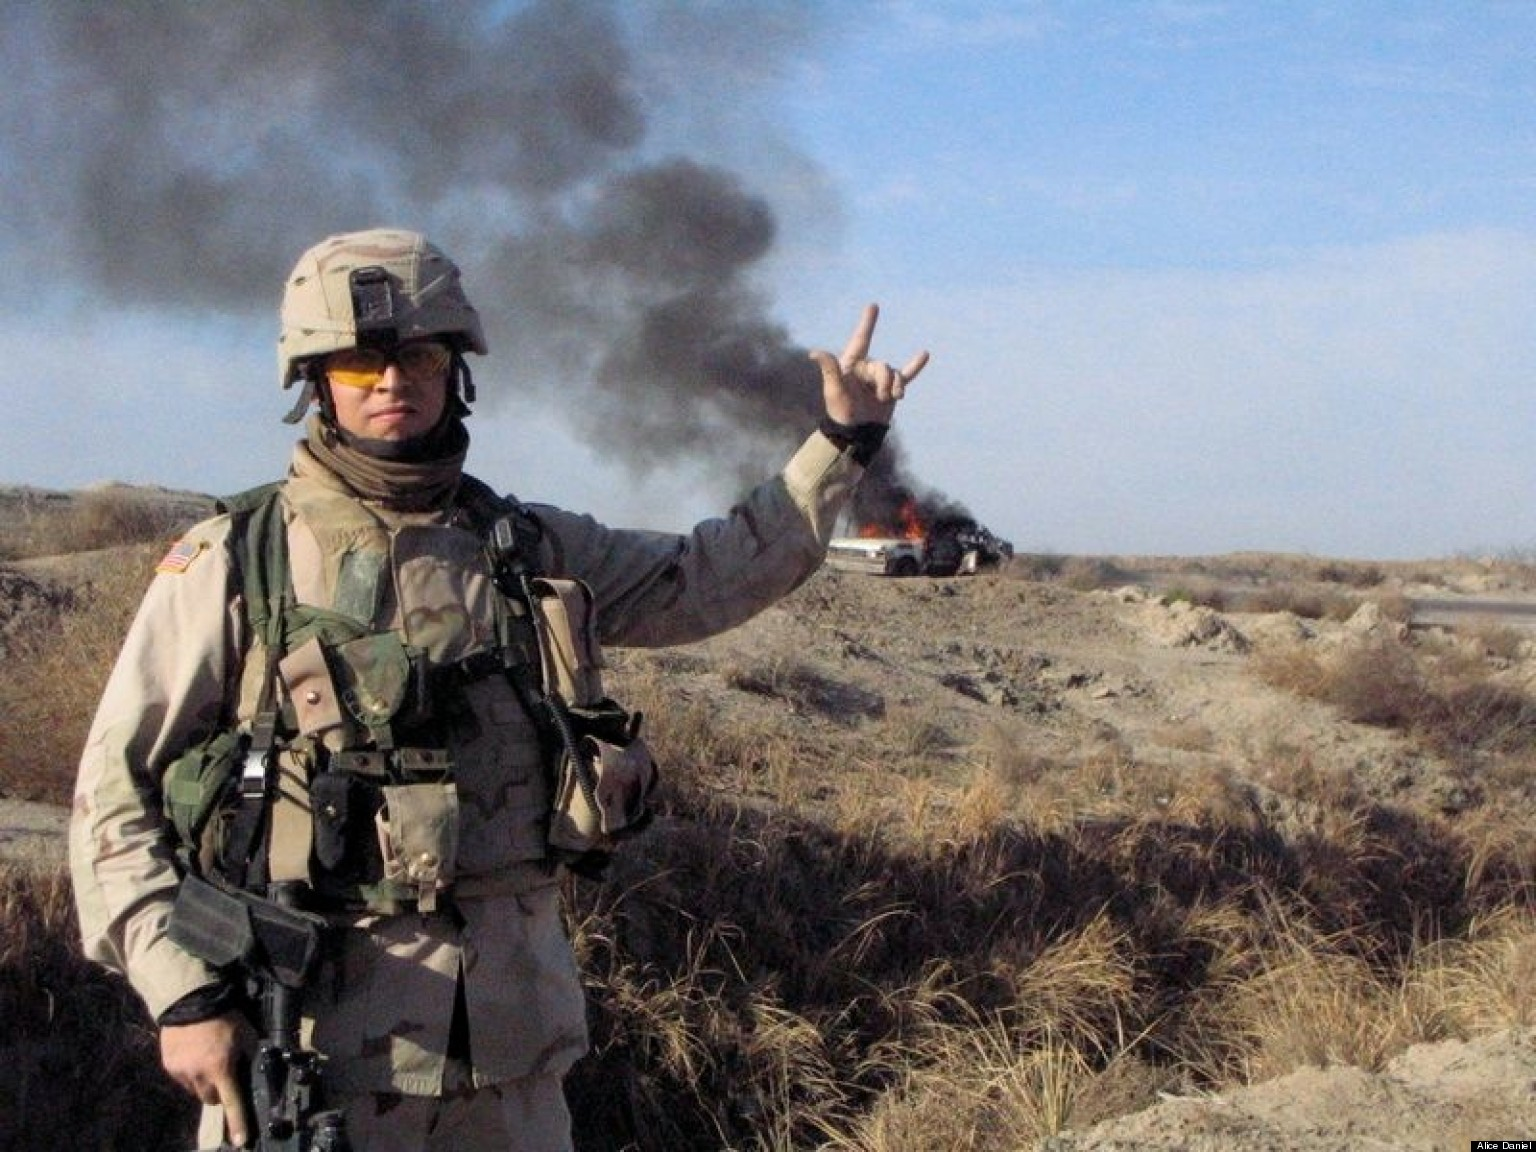 Gulf War Syndrome Other Illnesses Among Veterans May Be